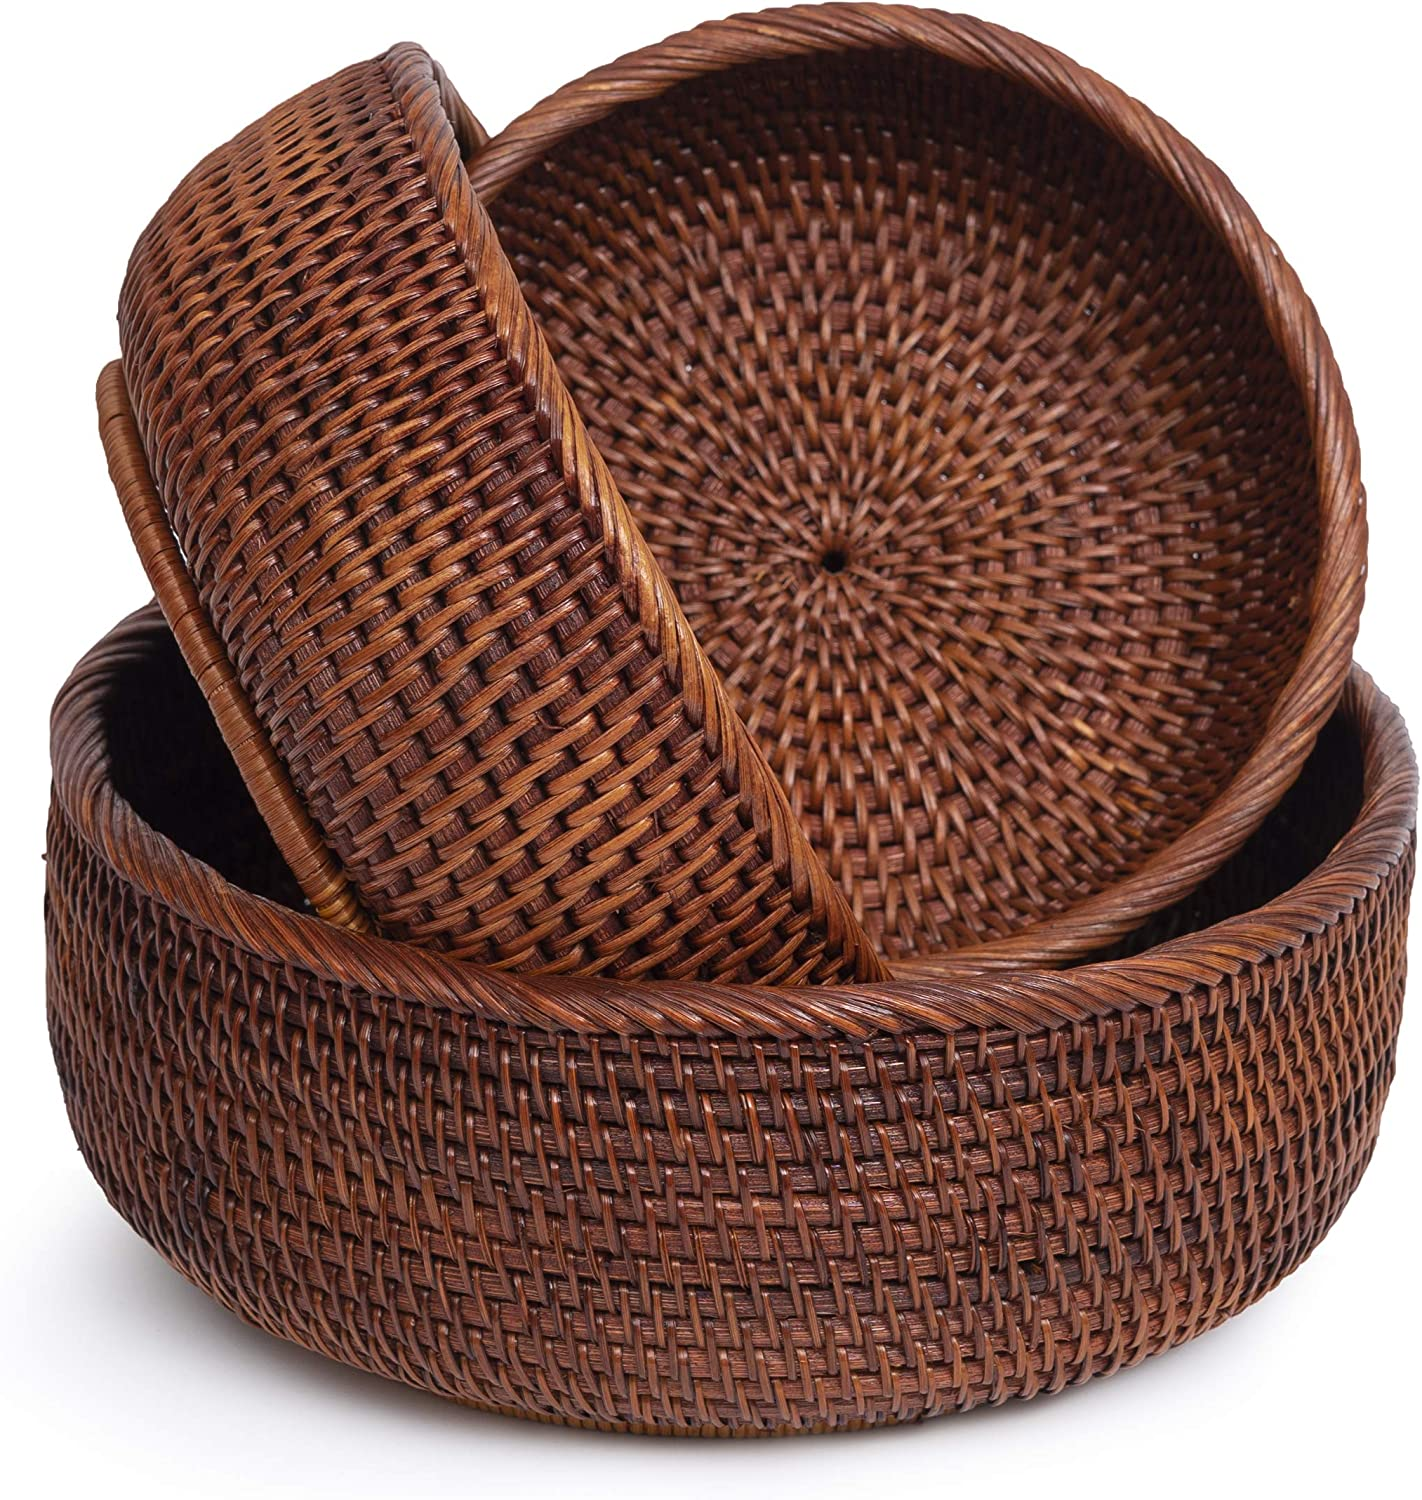 Wicker Bread Baskets For Fruit Vegetable Bowl Food Storage Organizing Kitchen Counter Desk Countertop Small To Large Natural Rattan Round Basket Serving Bowls Chips (3 Sizes: S+M+L, Honey Black)